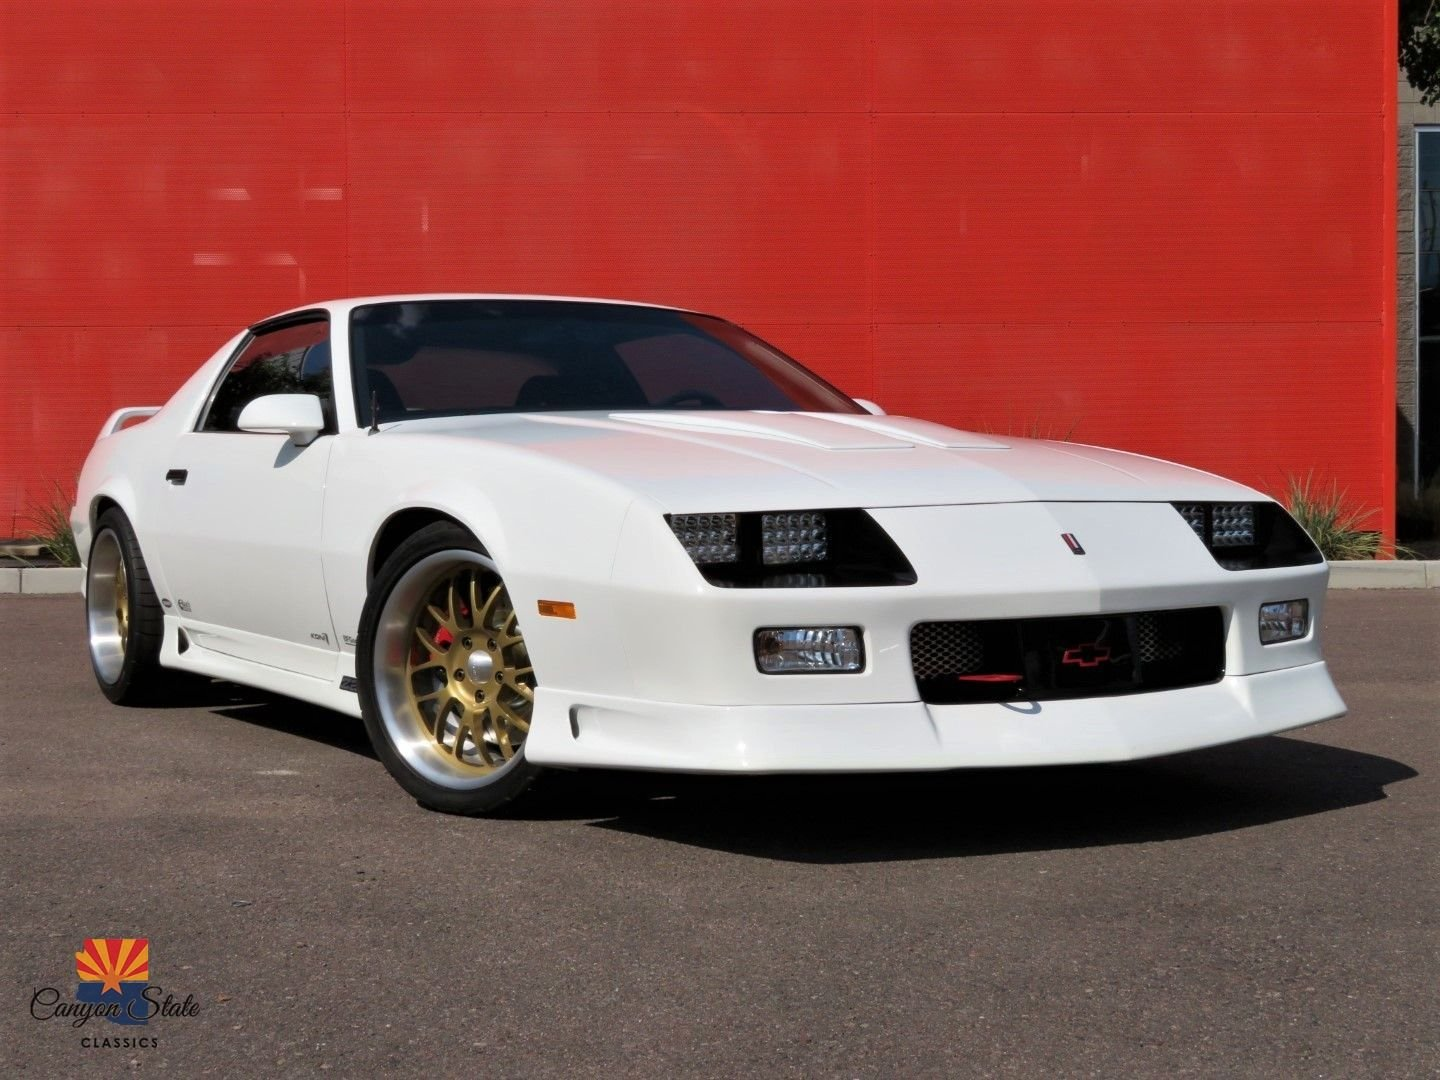 1991 chevrolet camaro canyon state classics 1991 chevrolet camaro canyon state